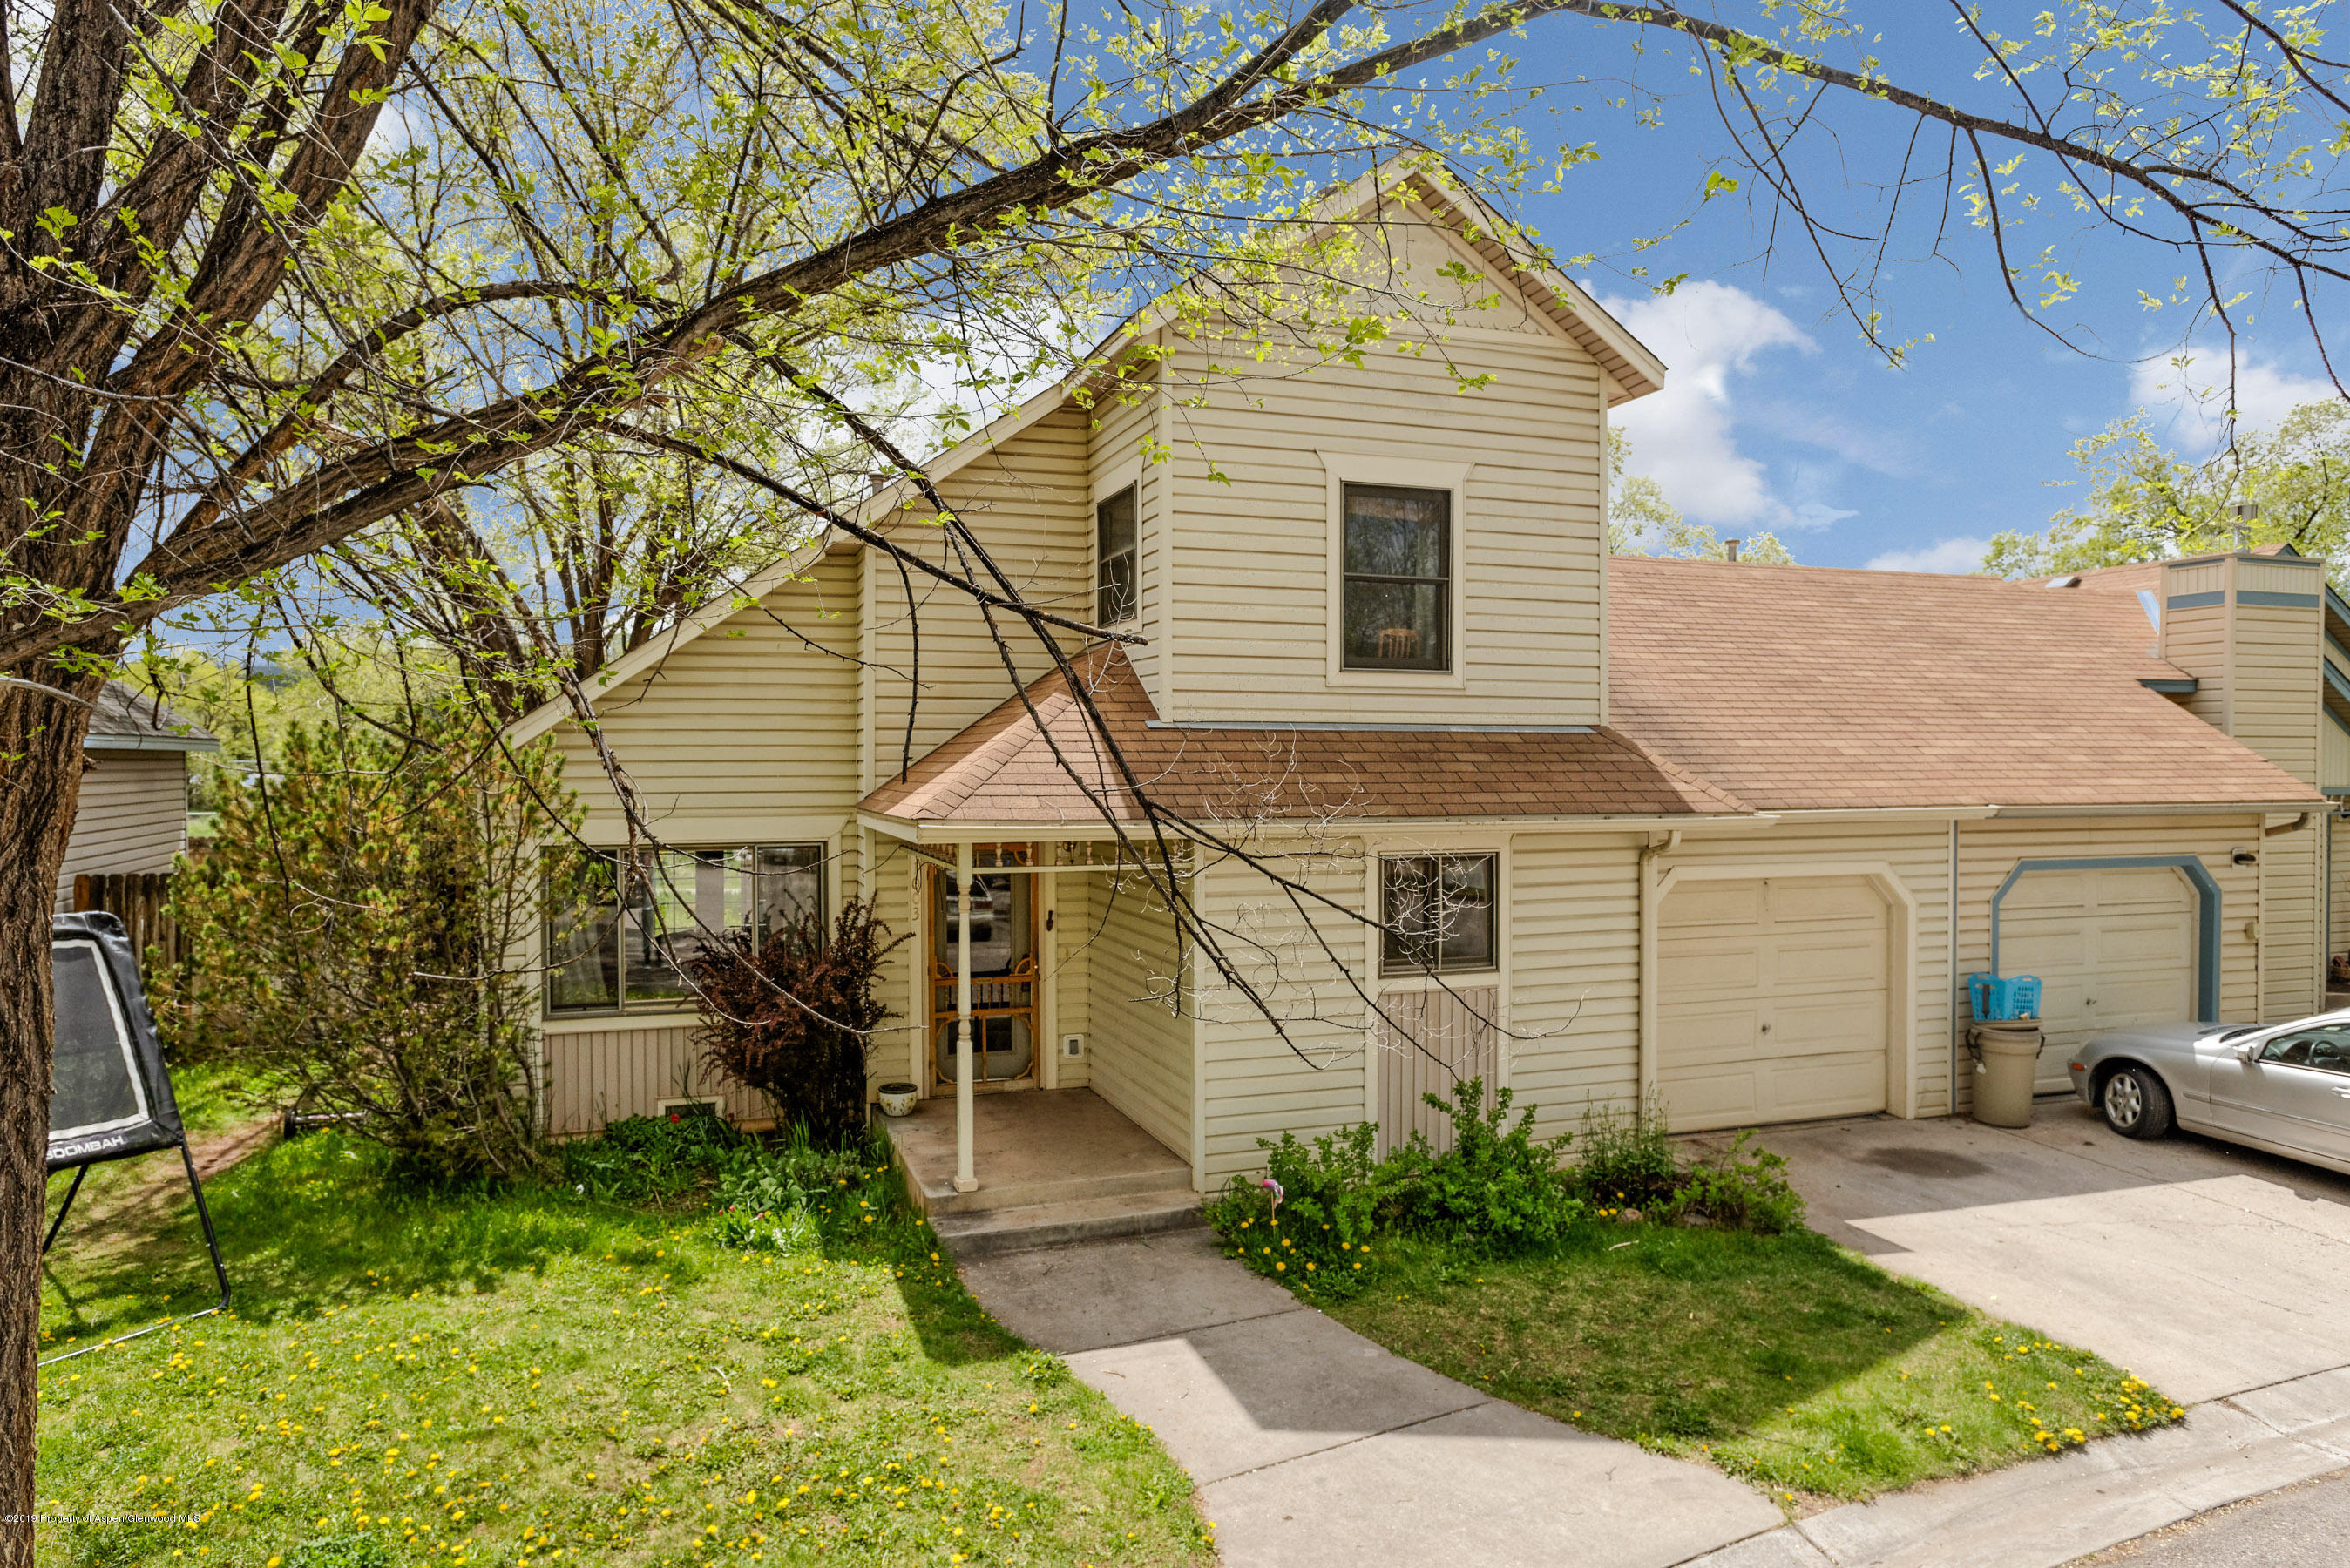 Find Homes for Sale in The Victorians at Roaring Fork